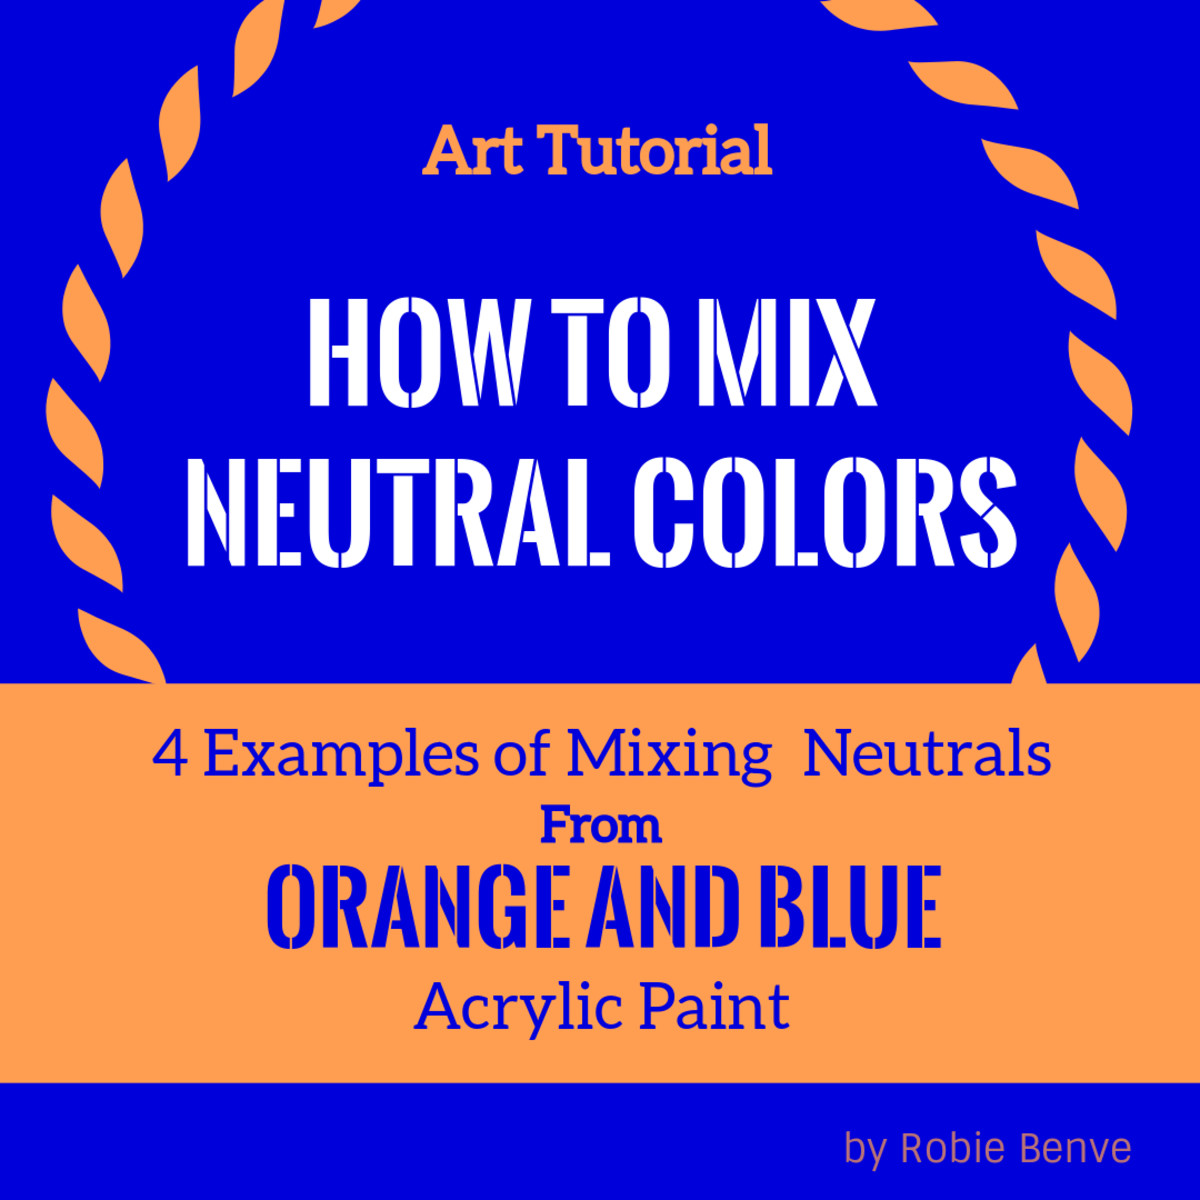 How to Mix Neutral Colors From Orange and Blue